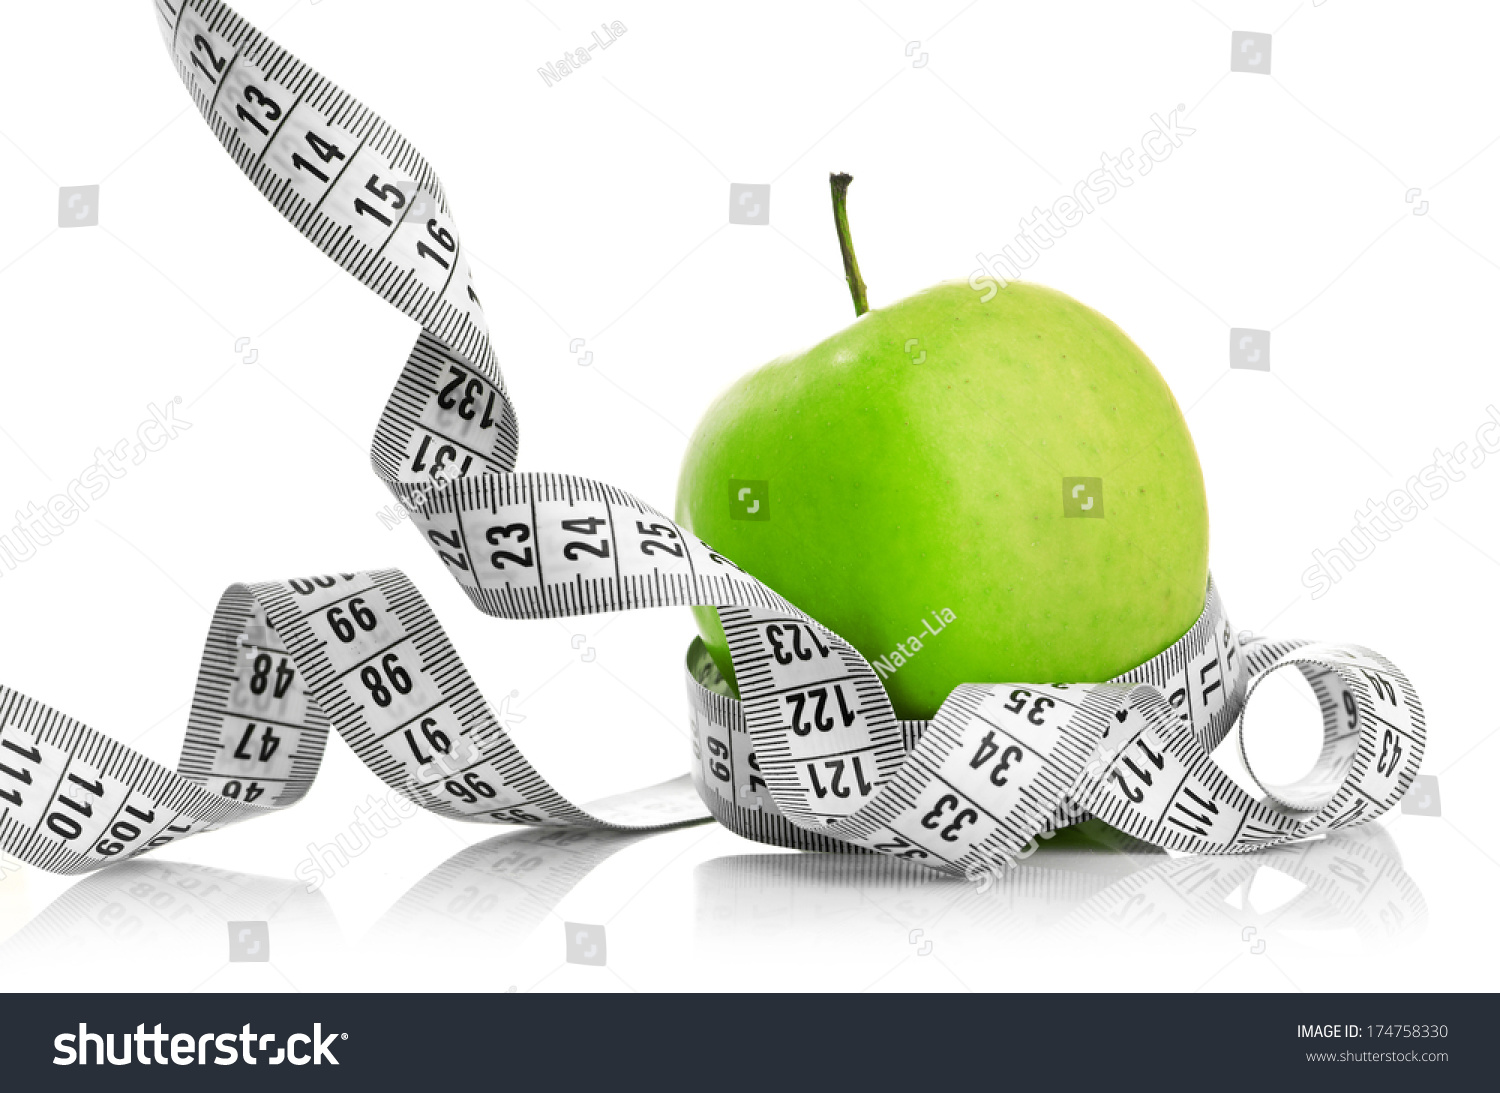 Measuring Tape Wrapped Around Green Apple Stock Photo 174758330